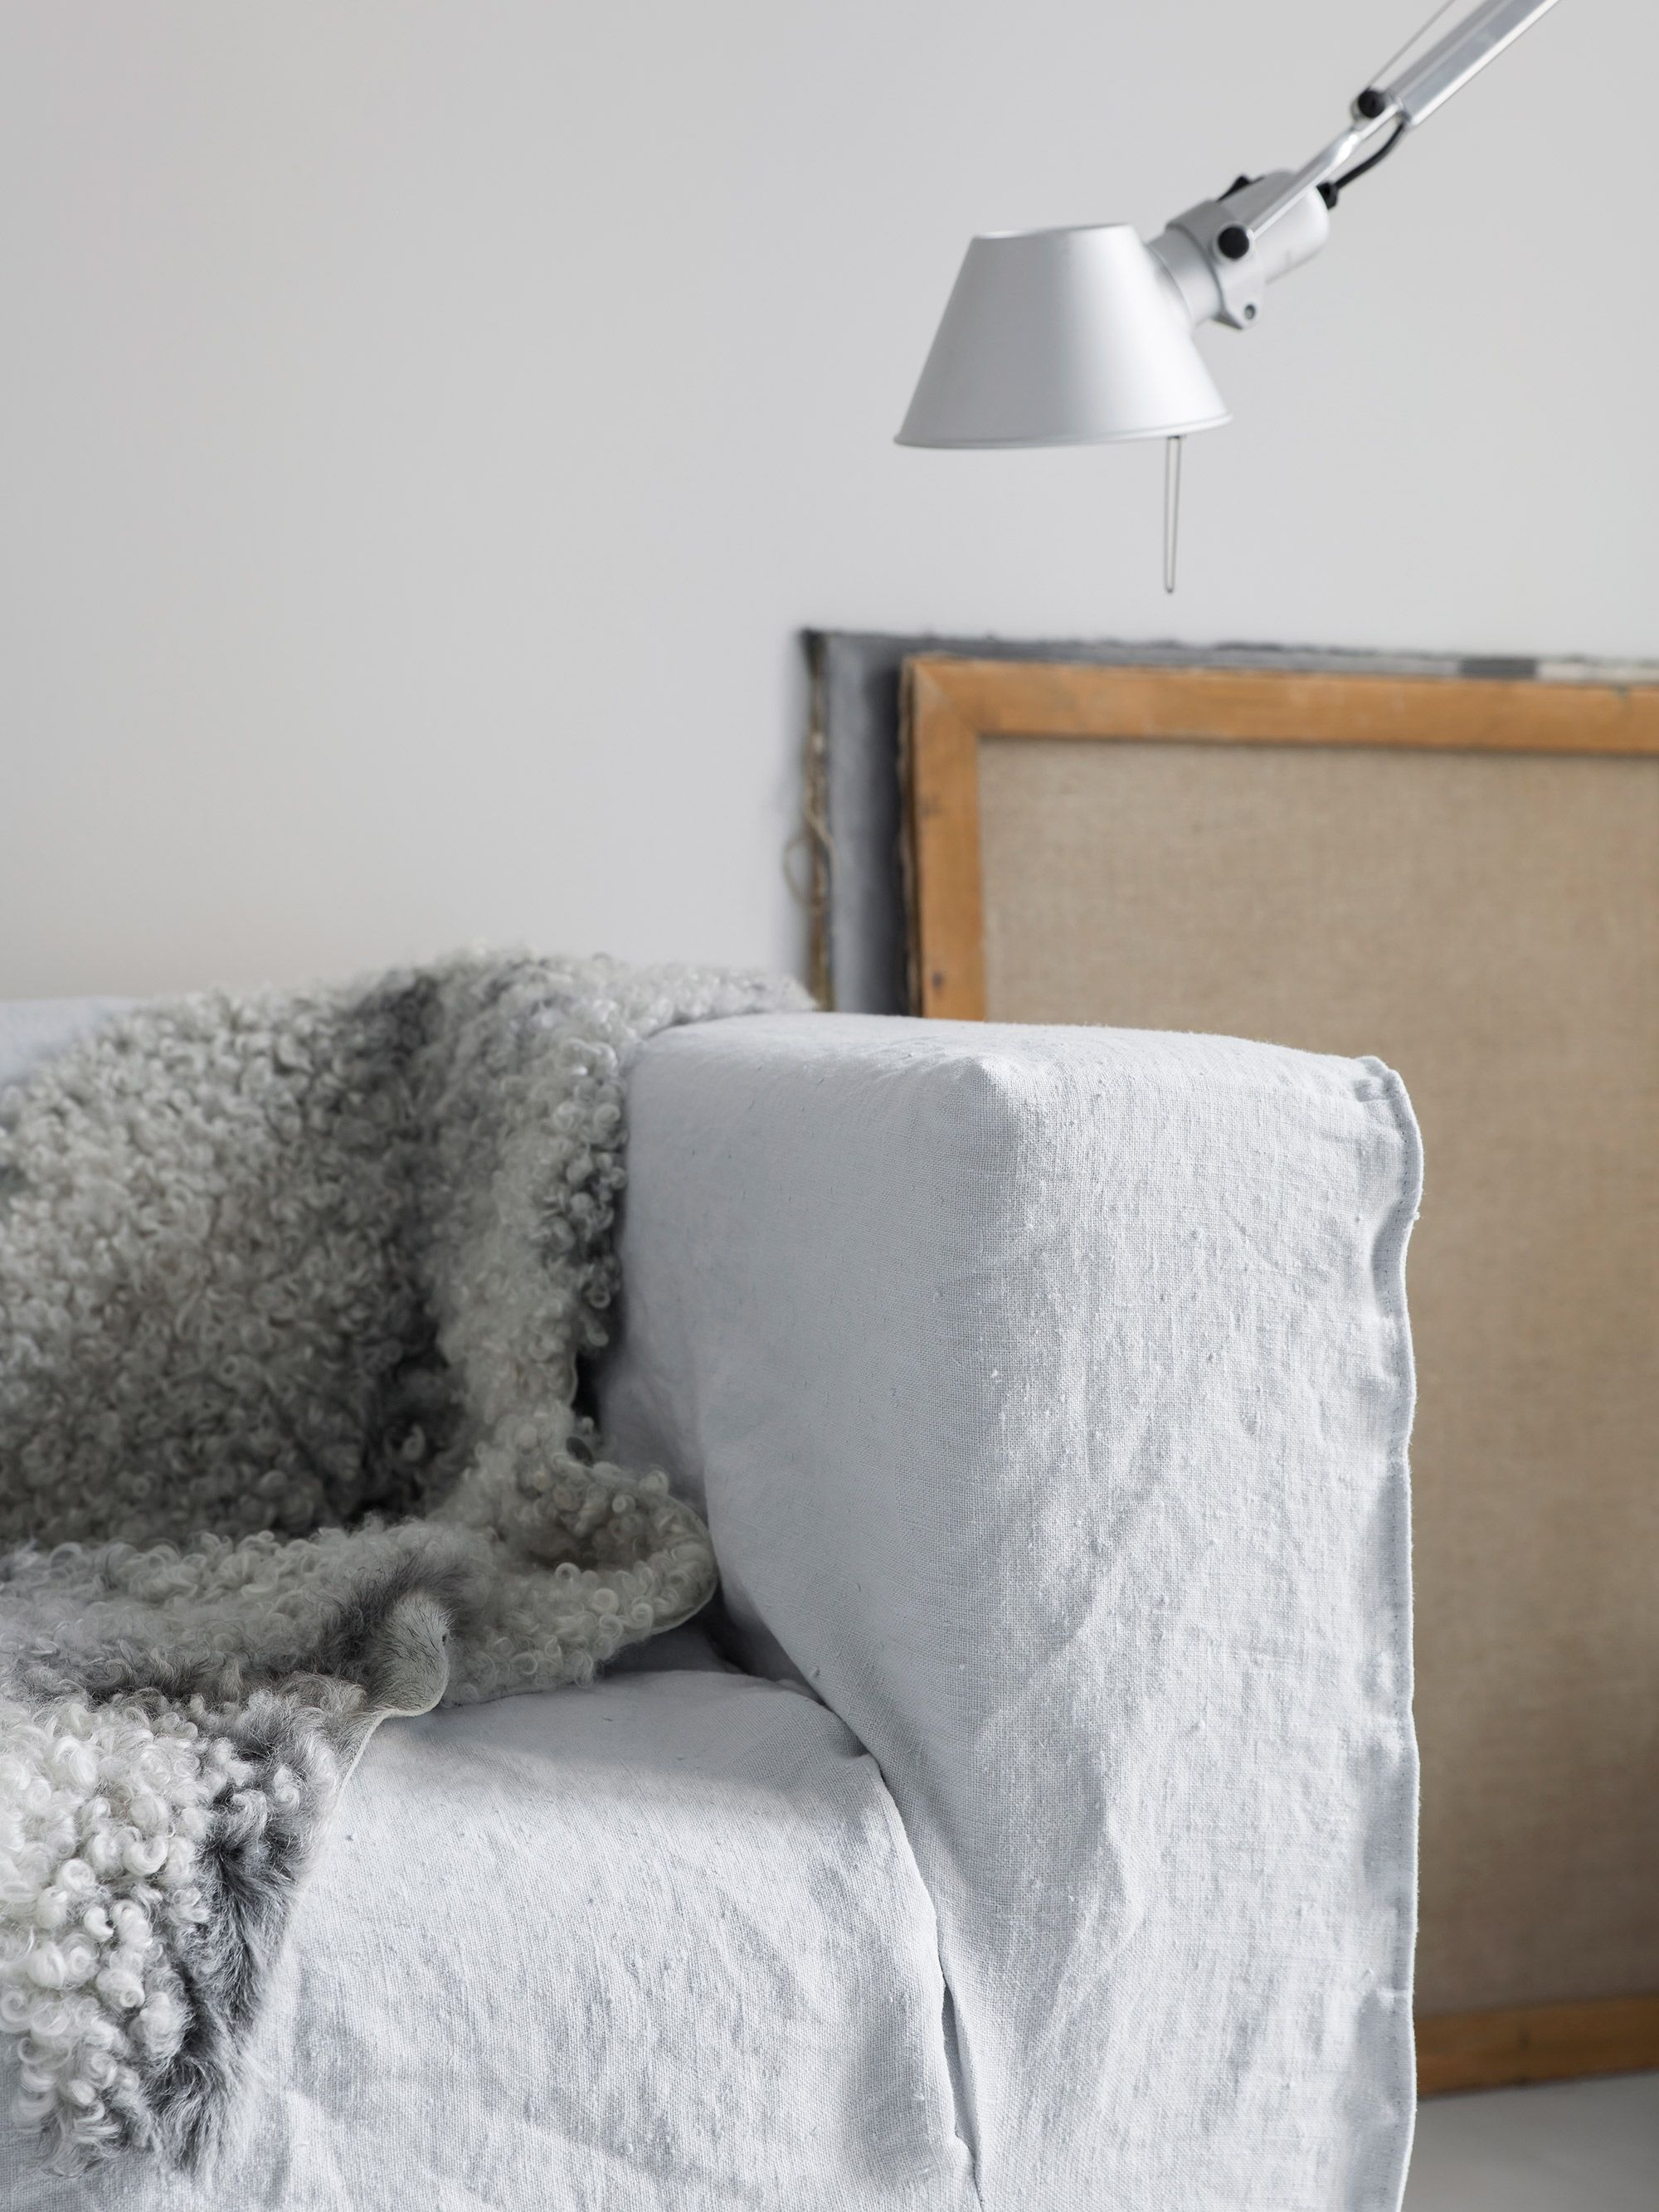 ... Help Of Stylist Pella Hedeby To Update An Old IKEA Klippan Sofa With A  Bemz Loose Fit Cover   Layered Nordic Living Room   Minimal Scandinavian  Style ...